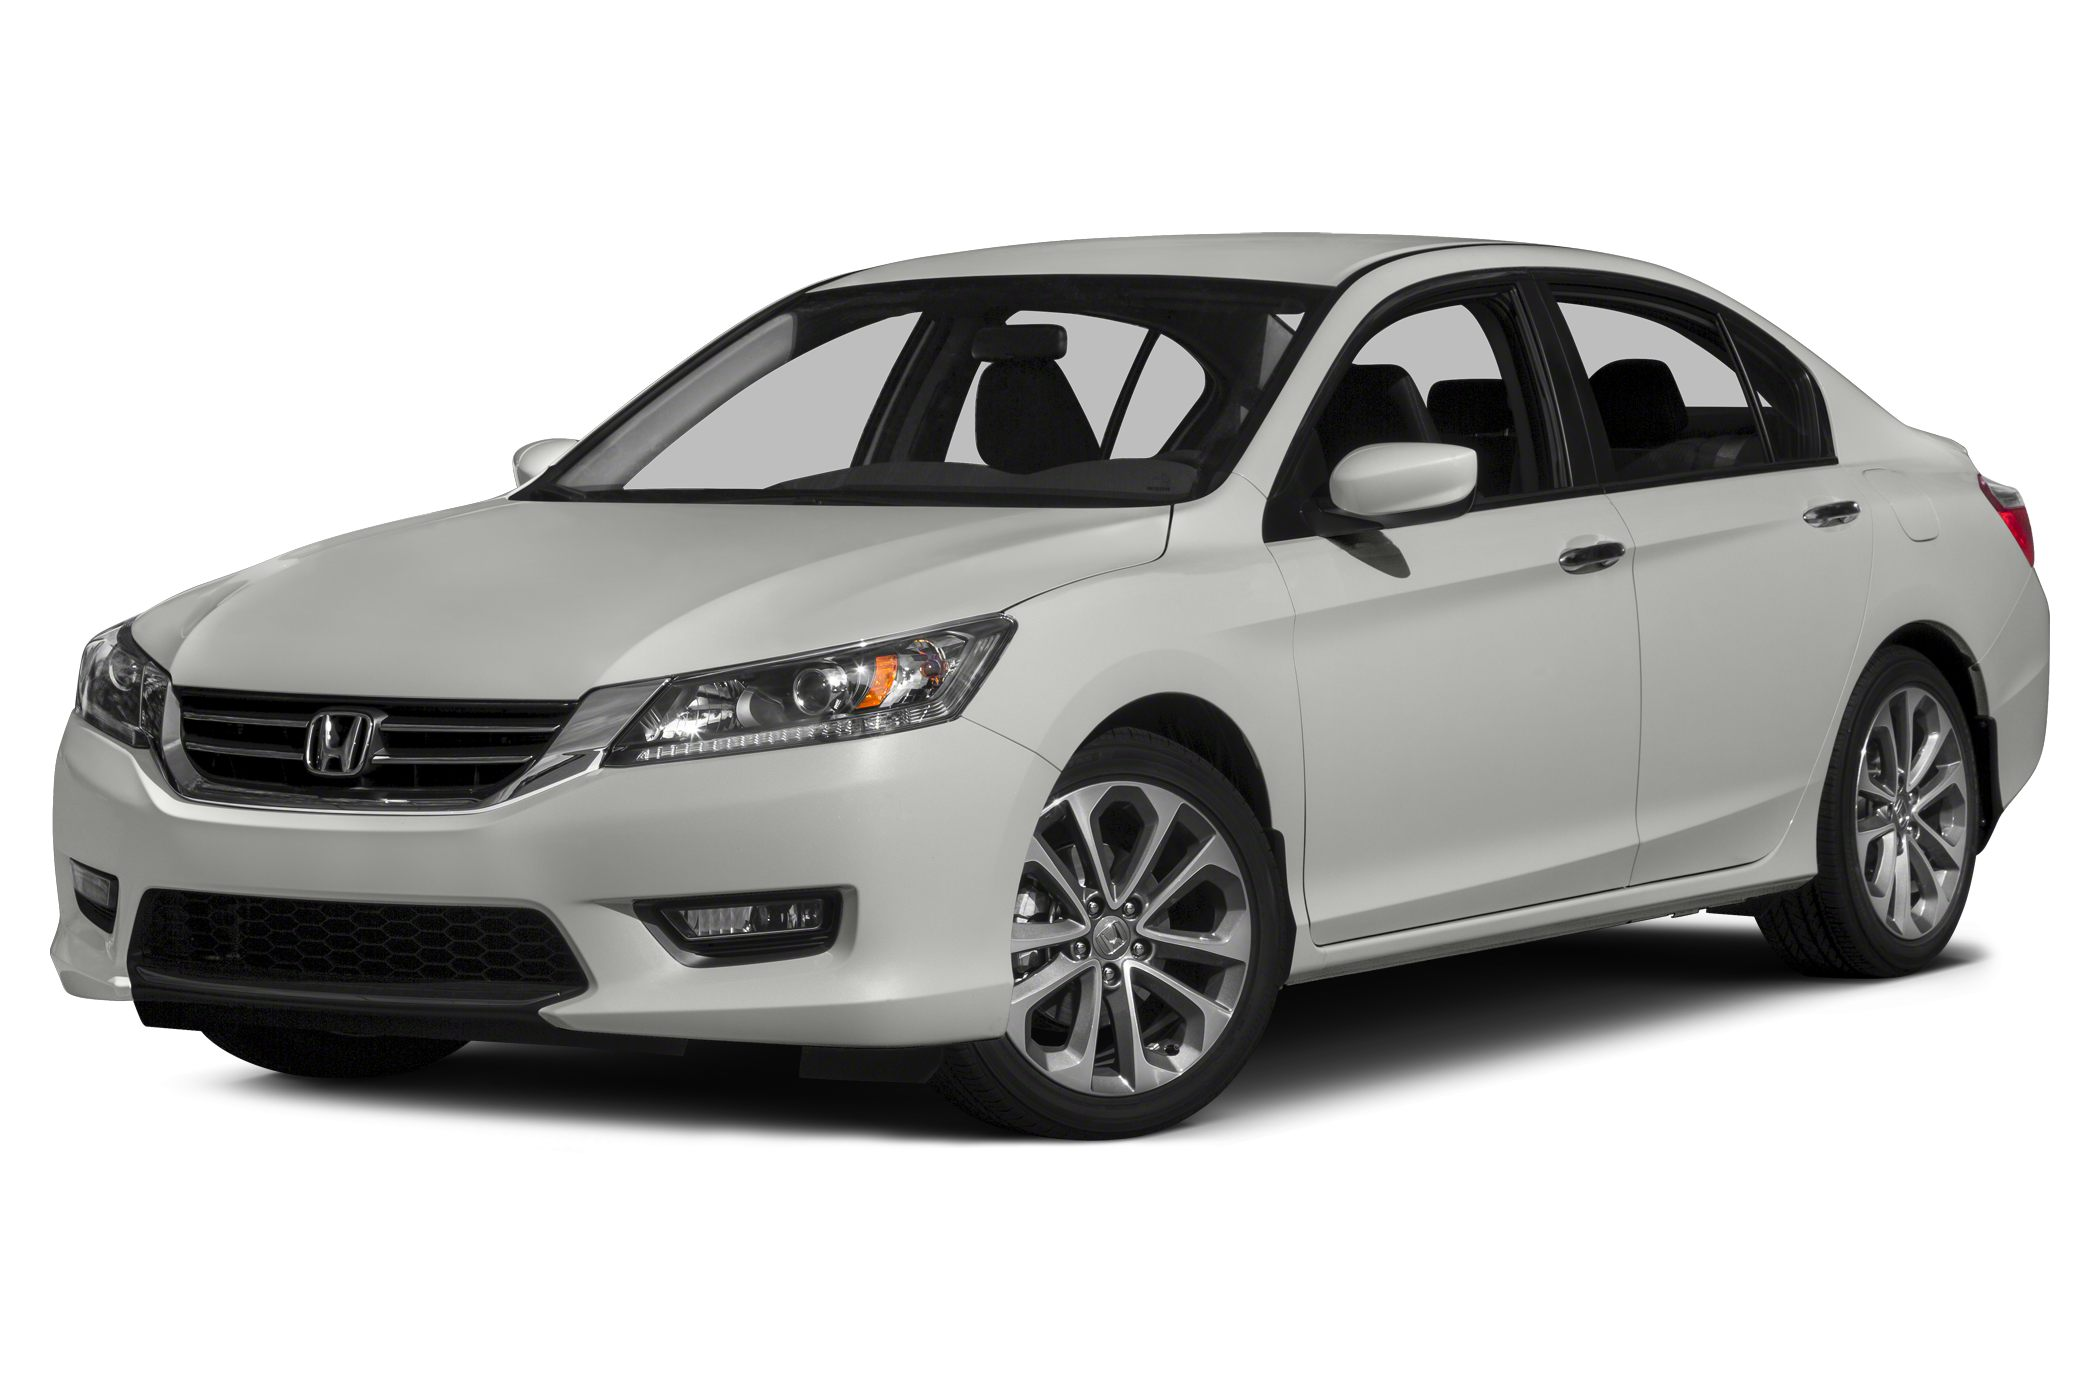 2015 Honda Accord Sport Sedan for sale in Greer for $23,865 with 11 miles.